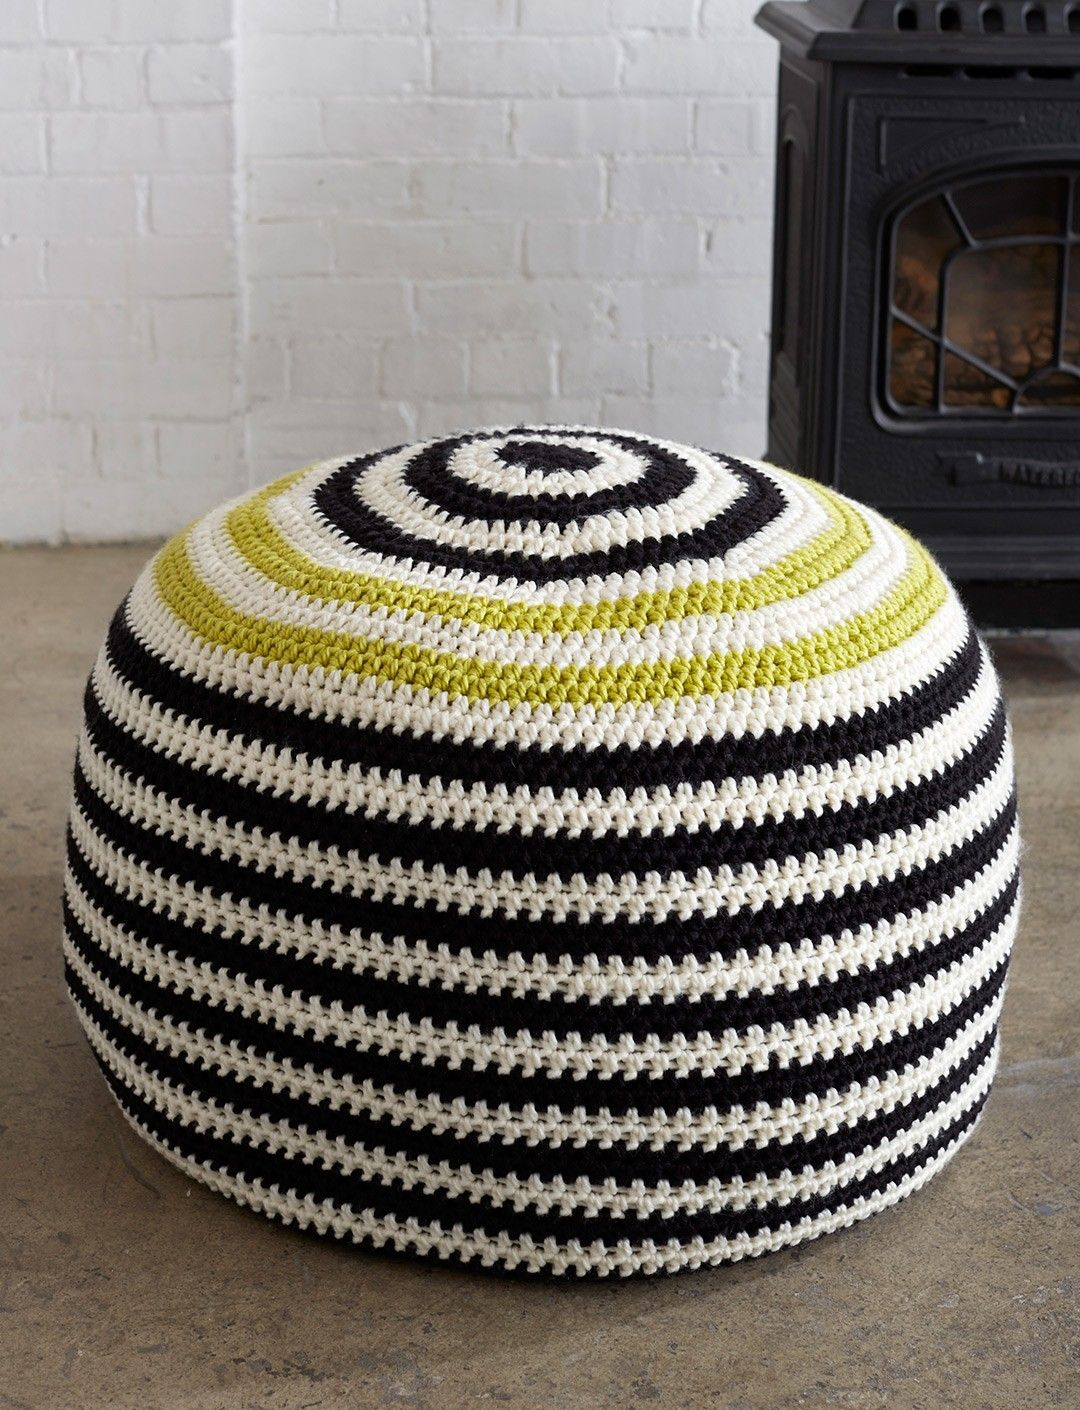 Graphic Stripes Pouf This bold striped pouf will add a fun touch to ...